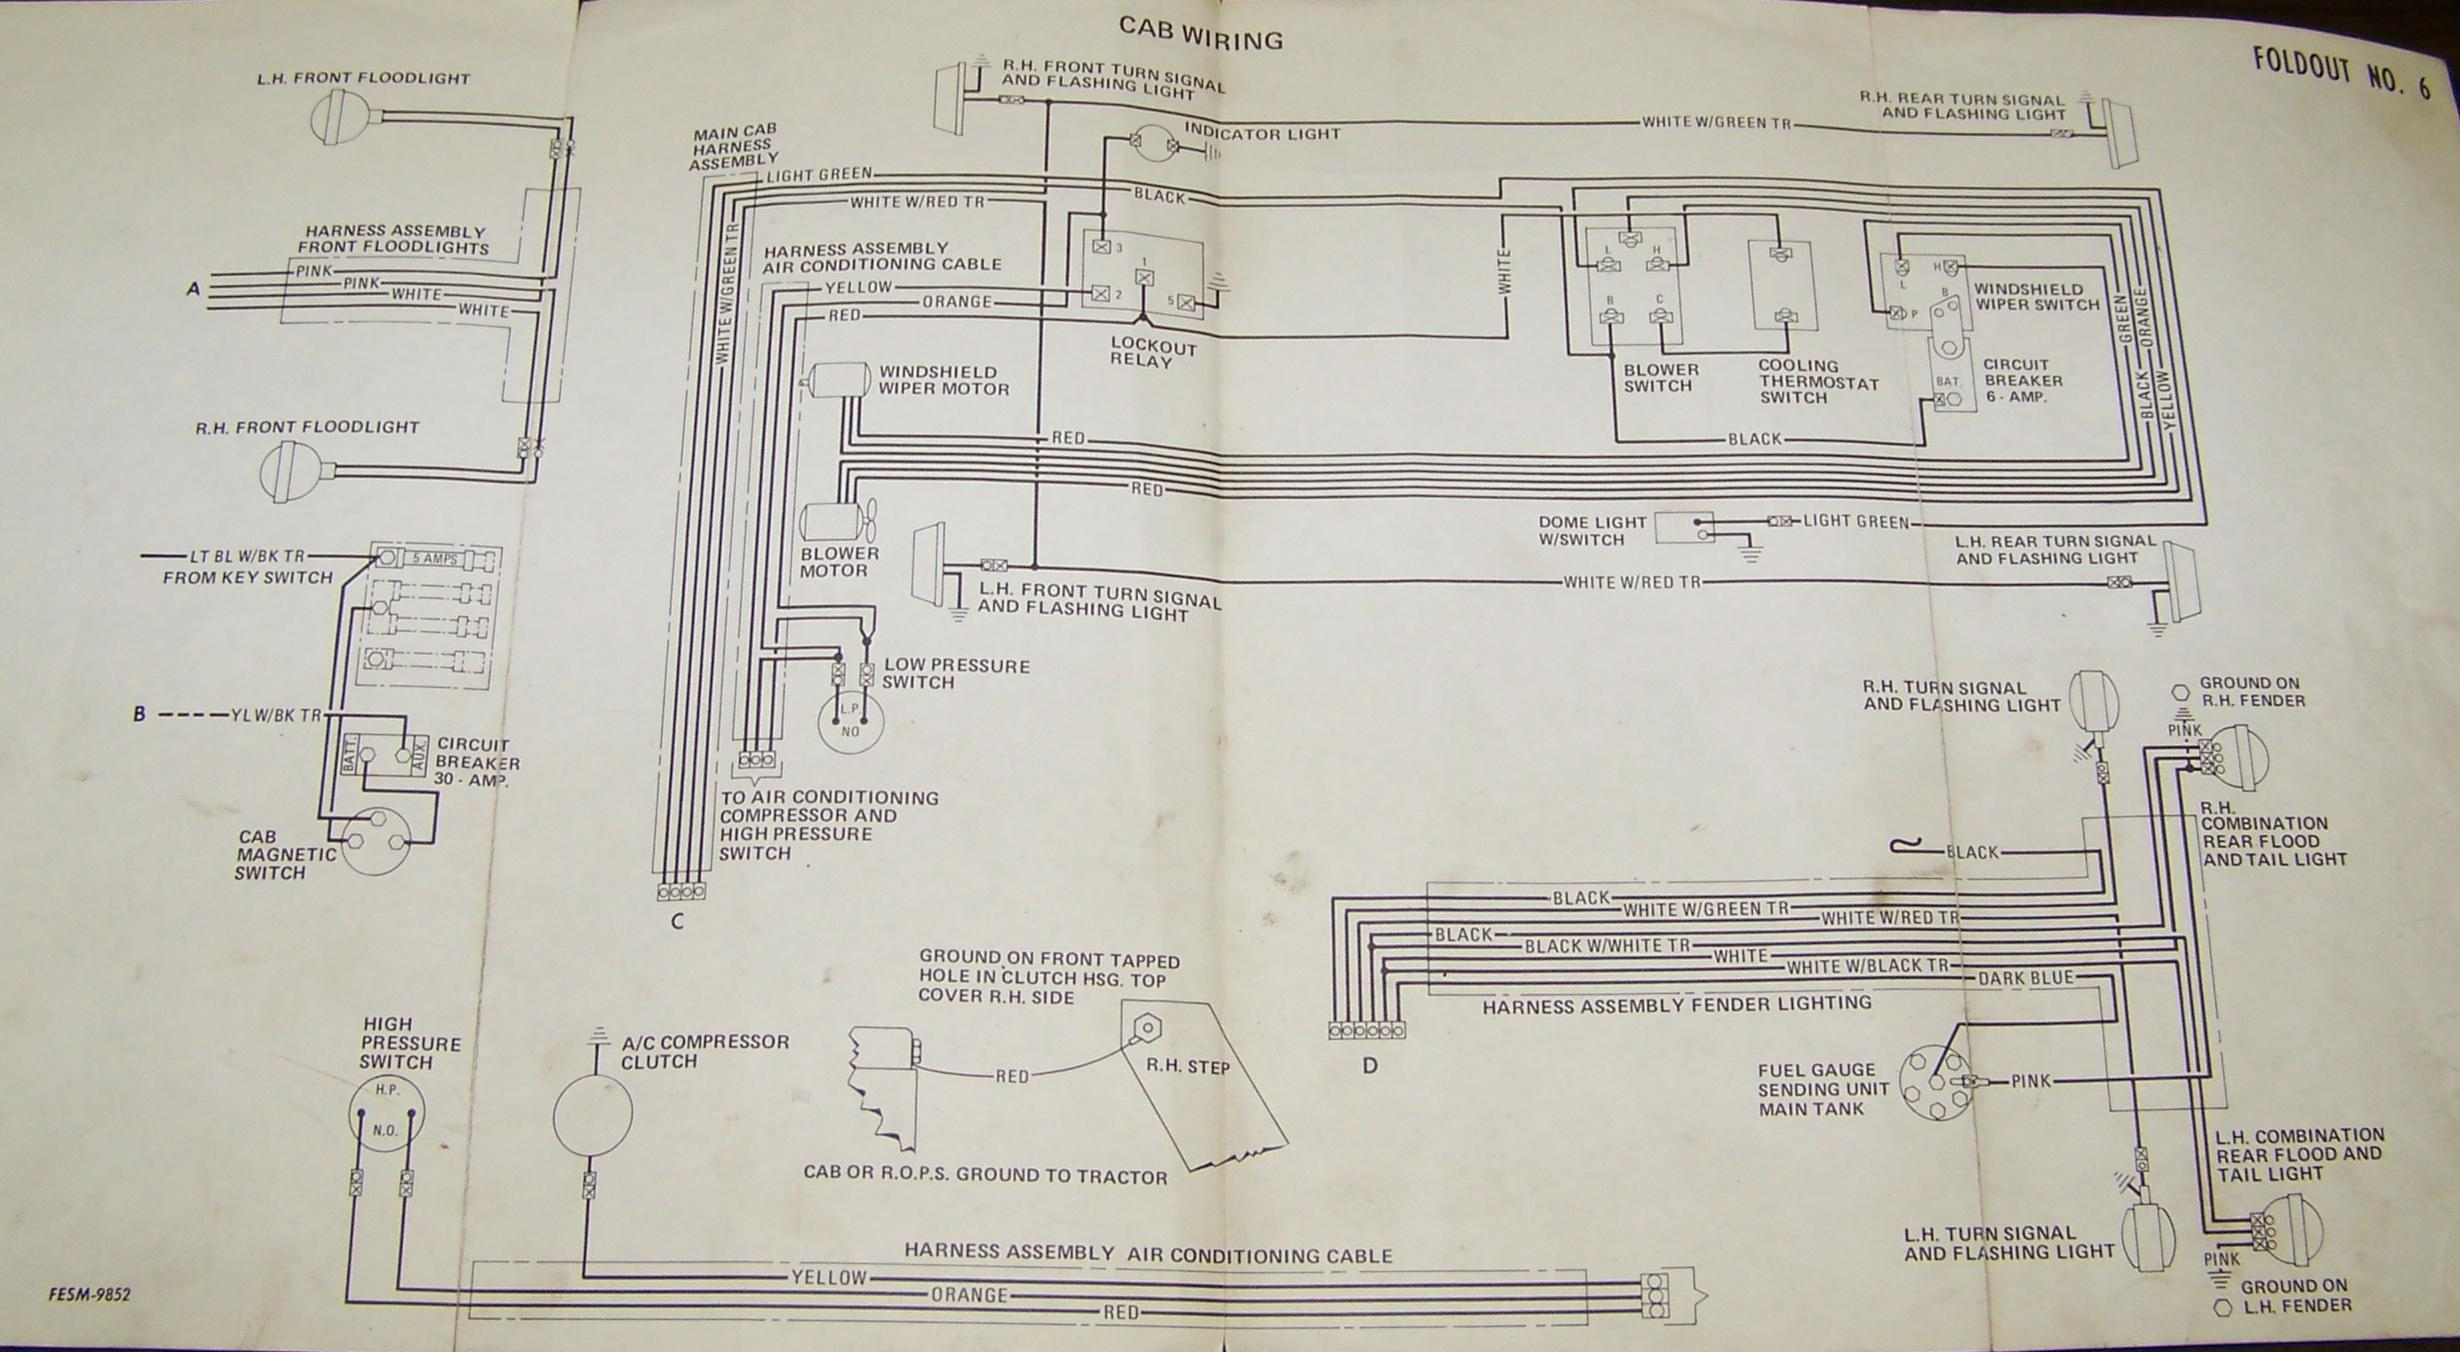 86series6 ih tractor wiring diagram ih tractor power steering \u2022 free wiring farmall cub 12 volt wiring diagram at mifinder.co